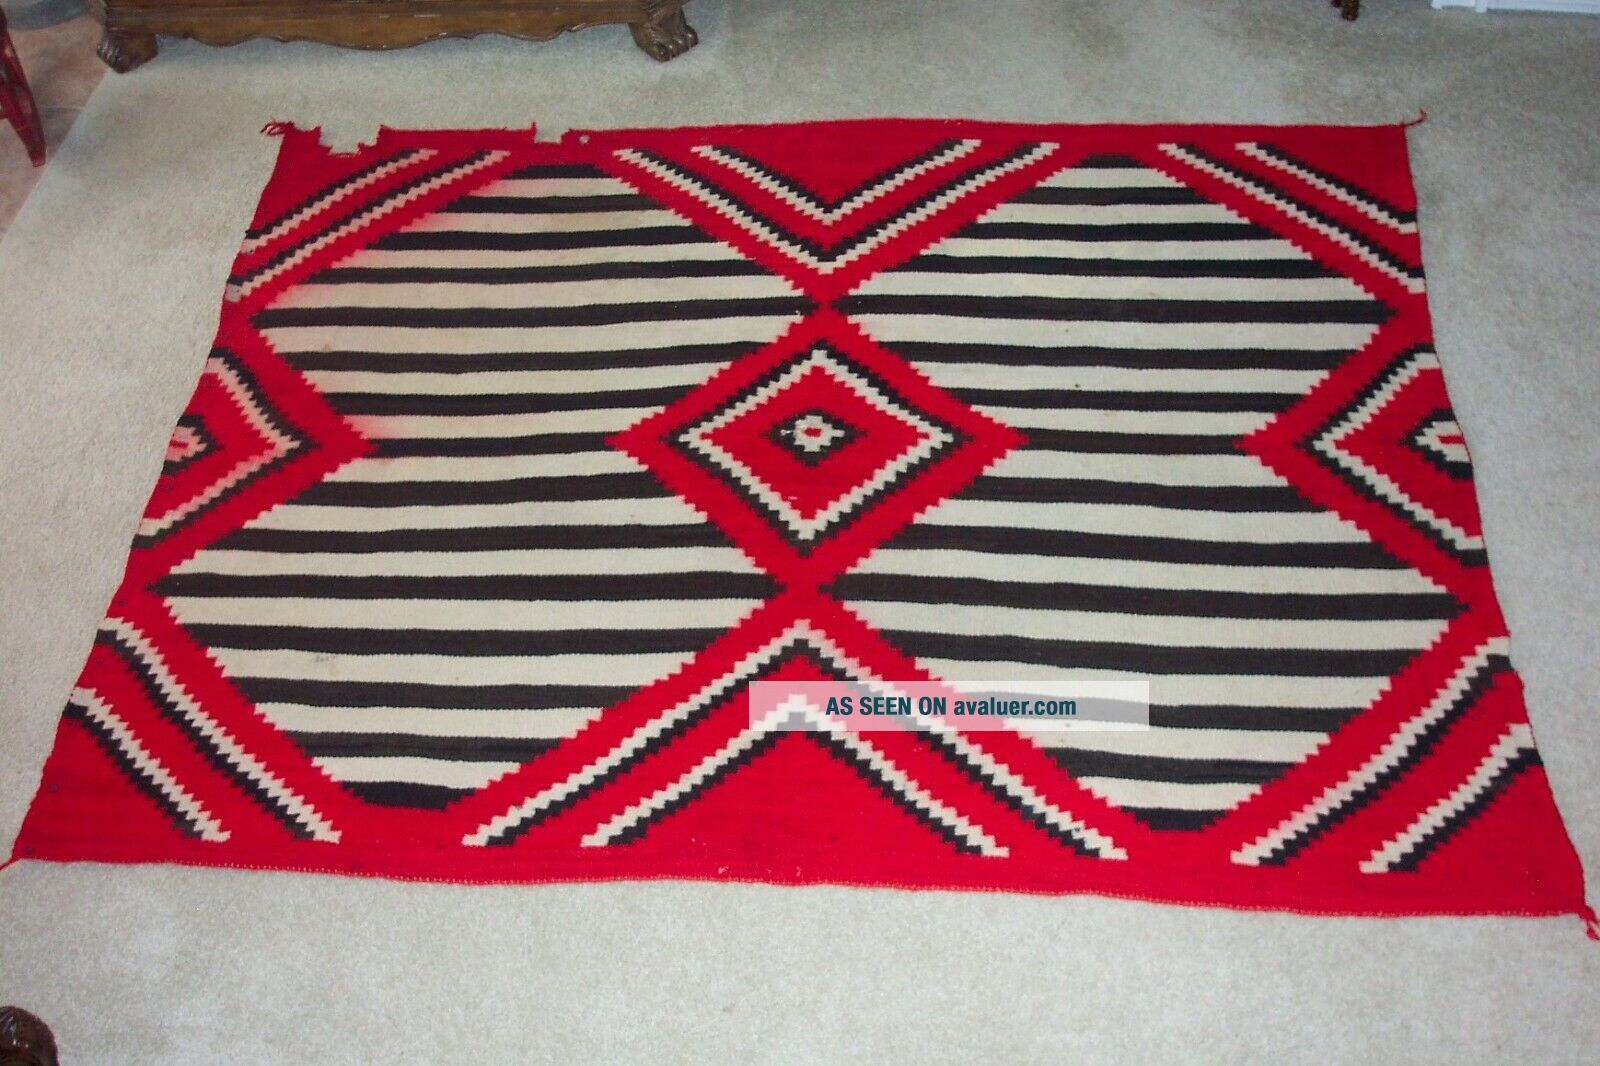 NAVAJO SECOND PHASE/THIRD PHASE CHIEF ' S BLANKET